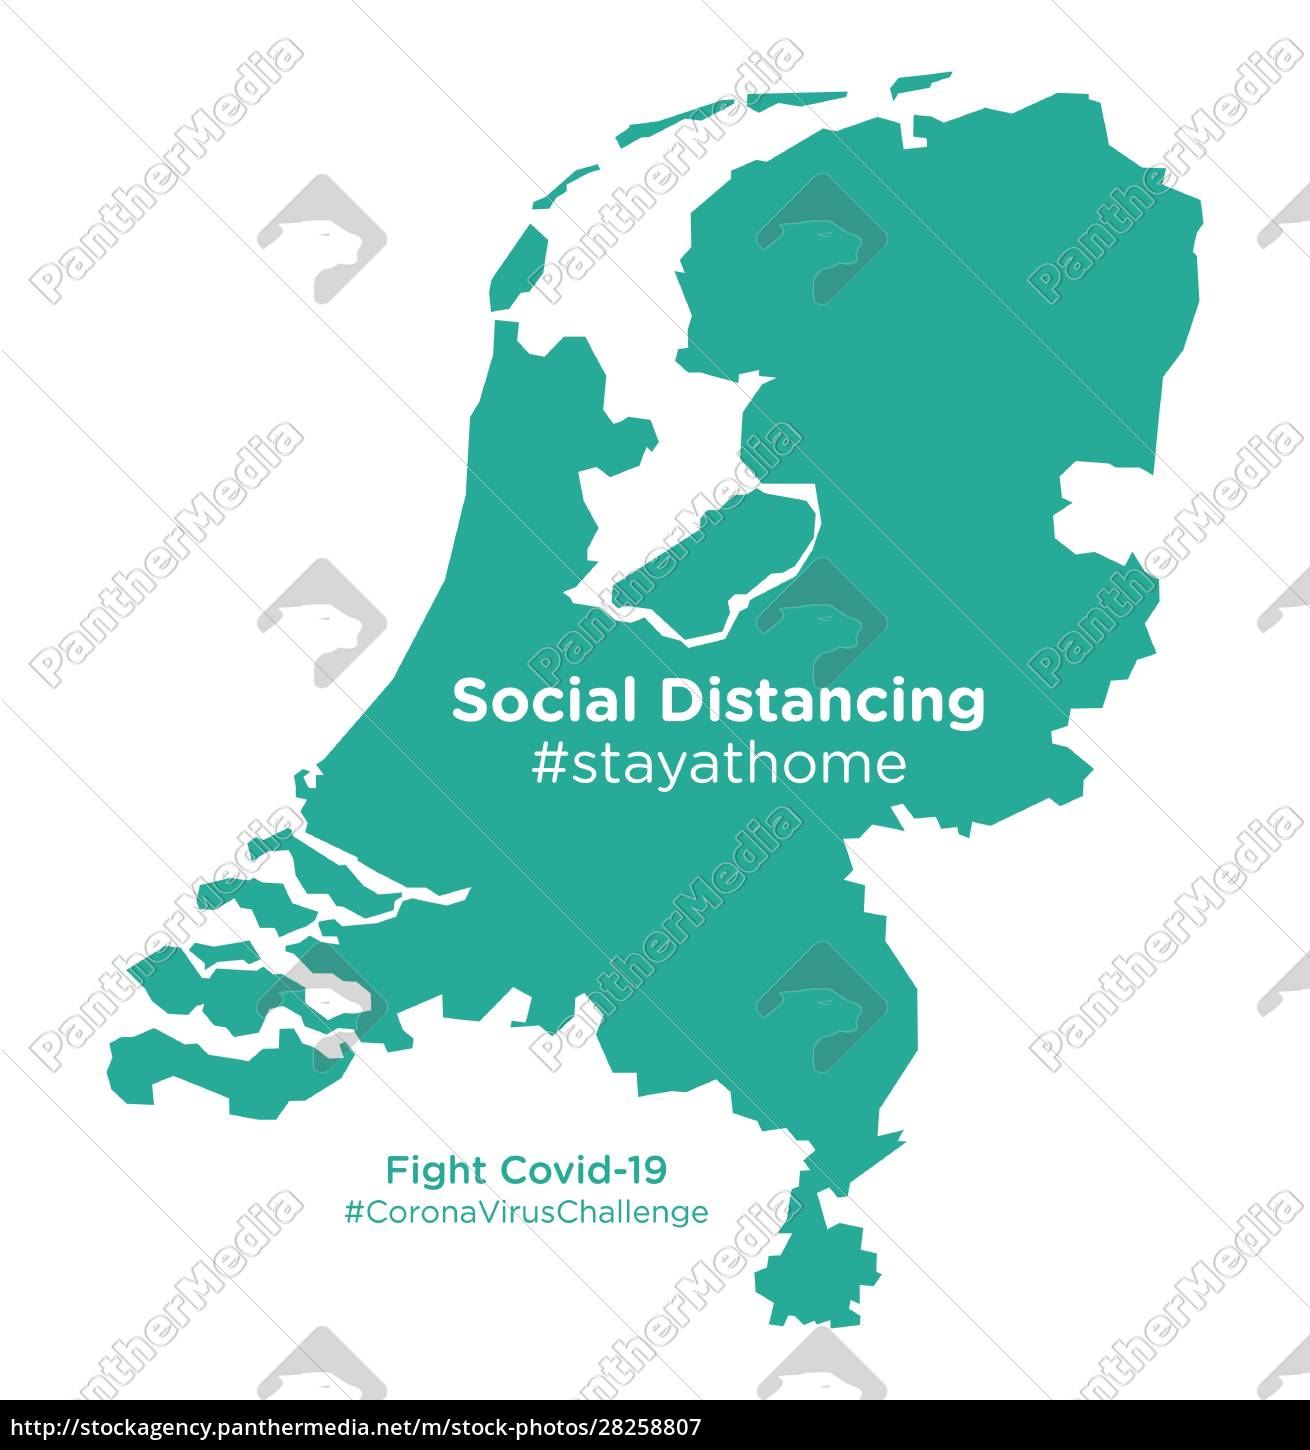 netherlands, map, with, social, distancing, #stayathome - 28258807